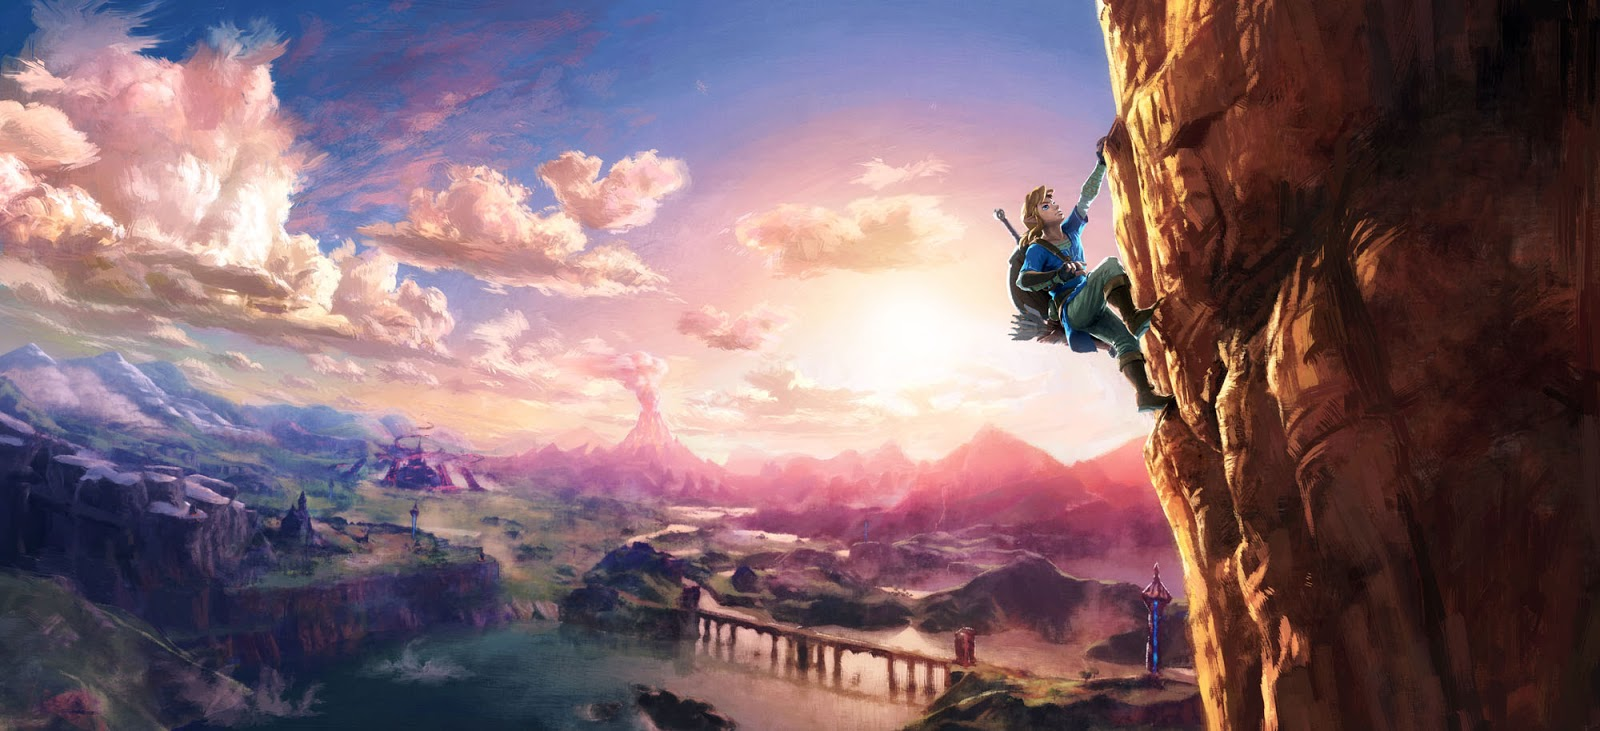 Los desarrolladores de The Legend of Zelda hablan de los retos de Breath of the Wild y el futuro